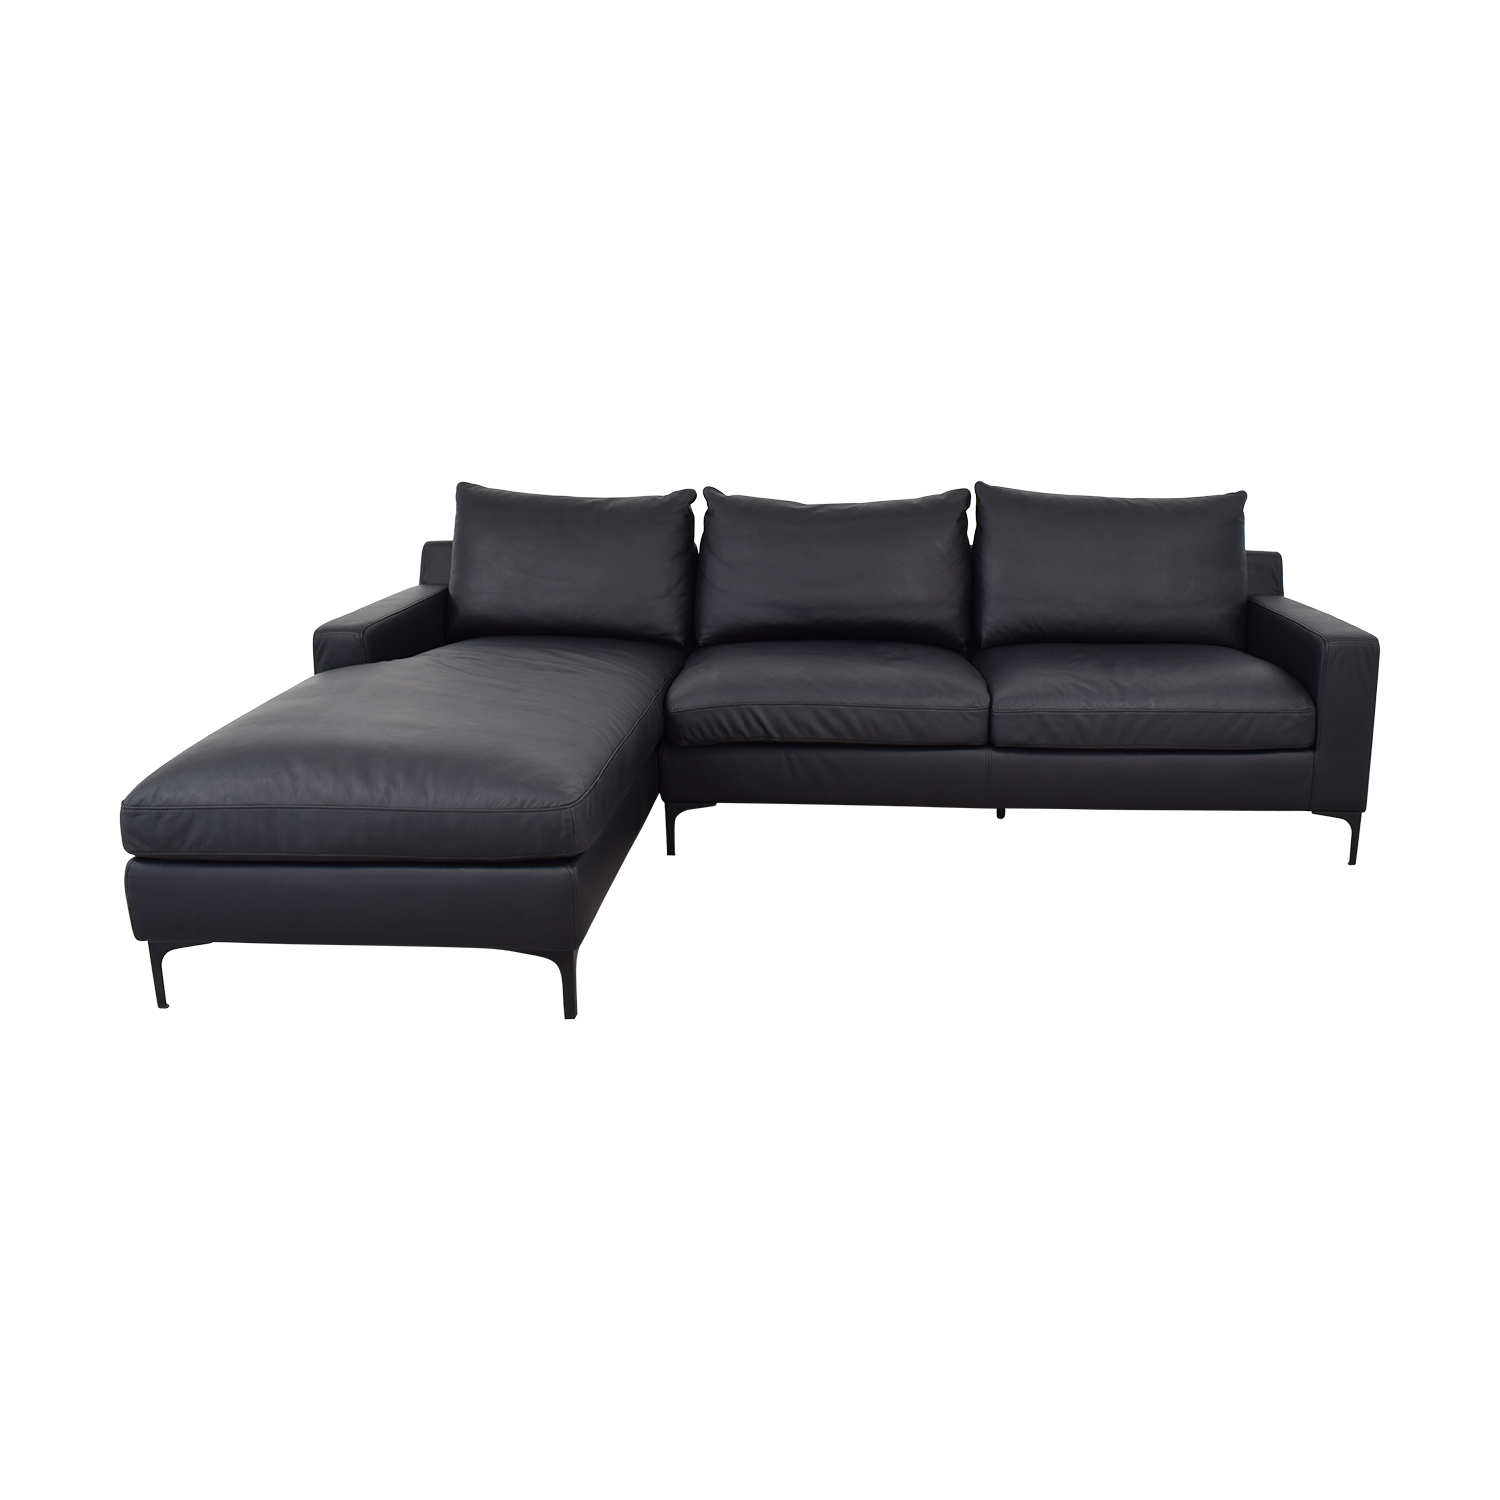 Interior Define Sloan Leather Night Left Chaise Sectional nyc